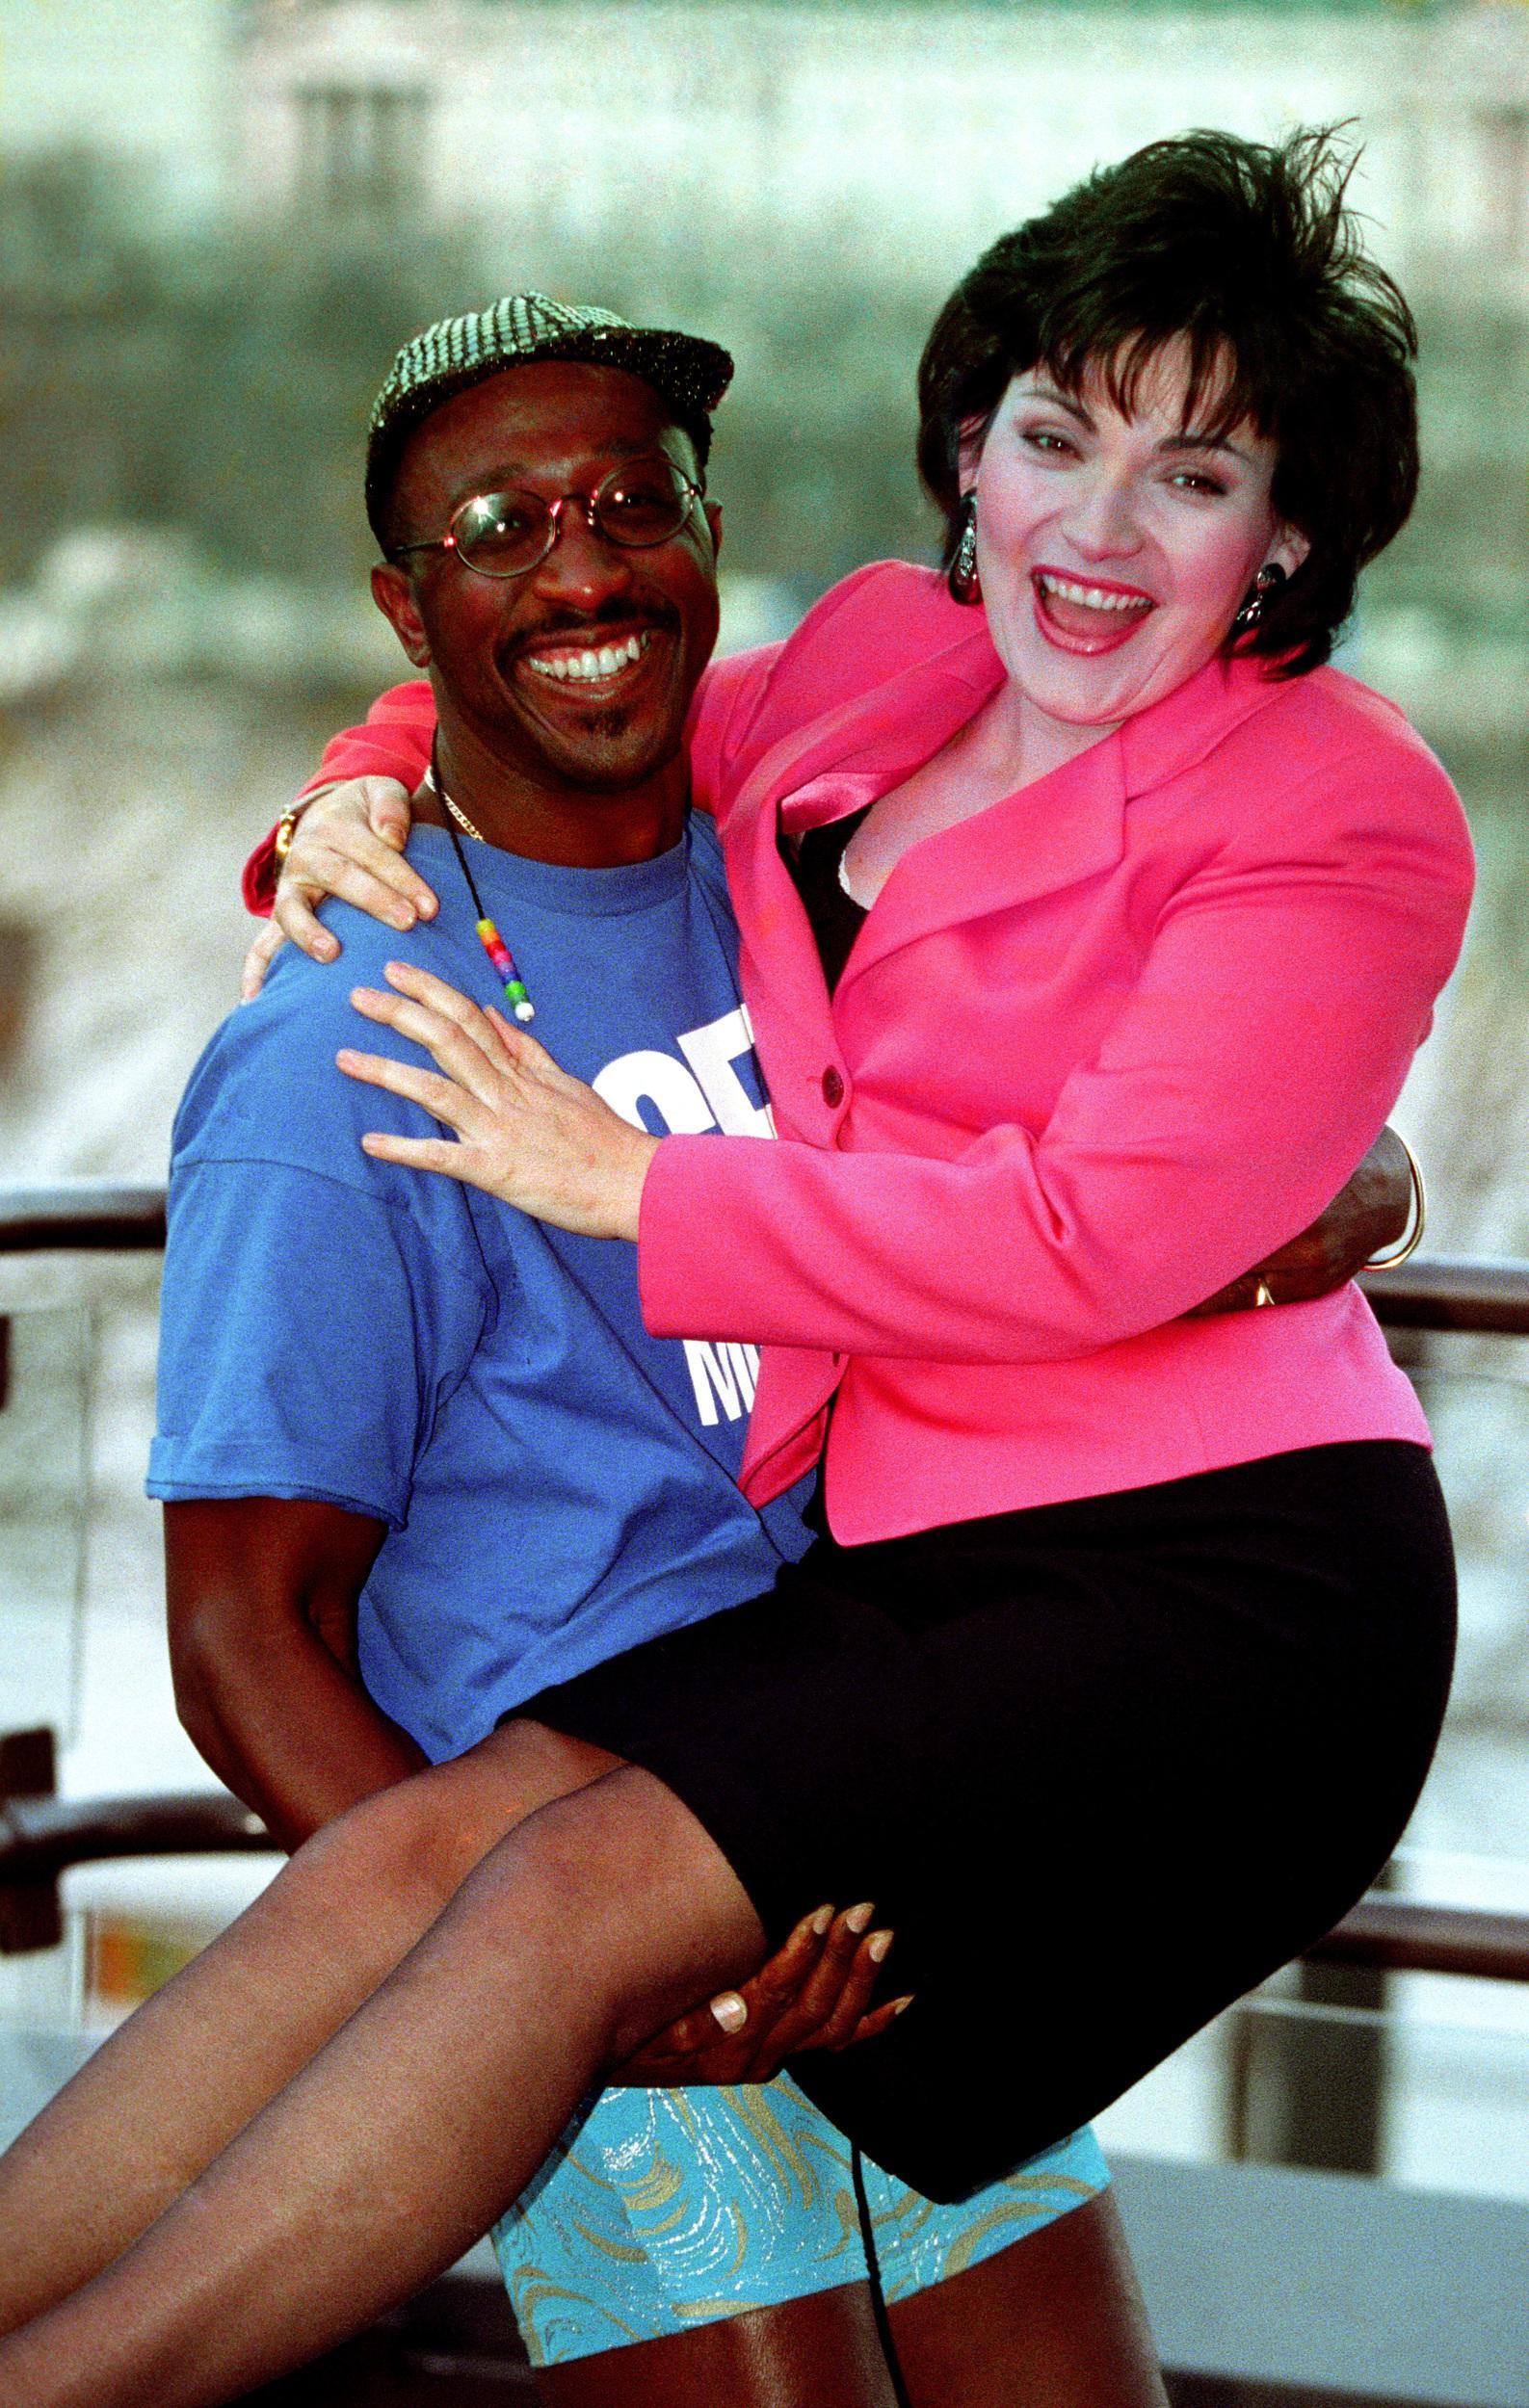 Lorraine kelly welcomed back to GMTV by the breaskfast channel's Mr Motivator. Lorraine will return in the new year to present her own programme between 8.45-9.25.